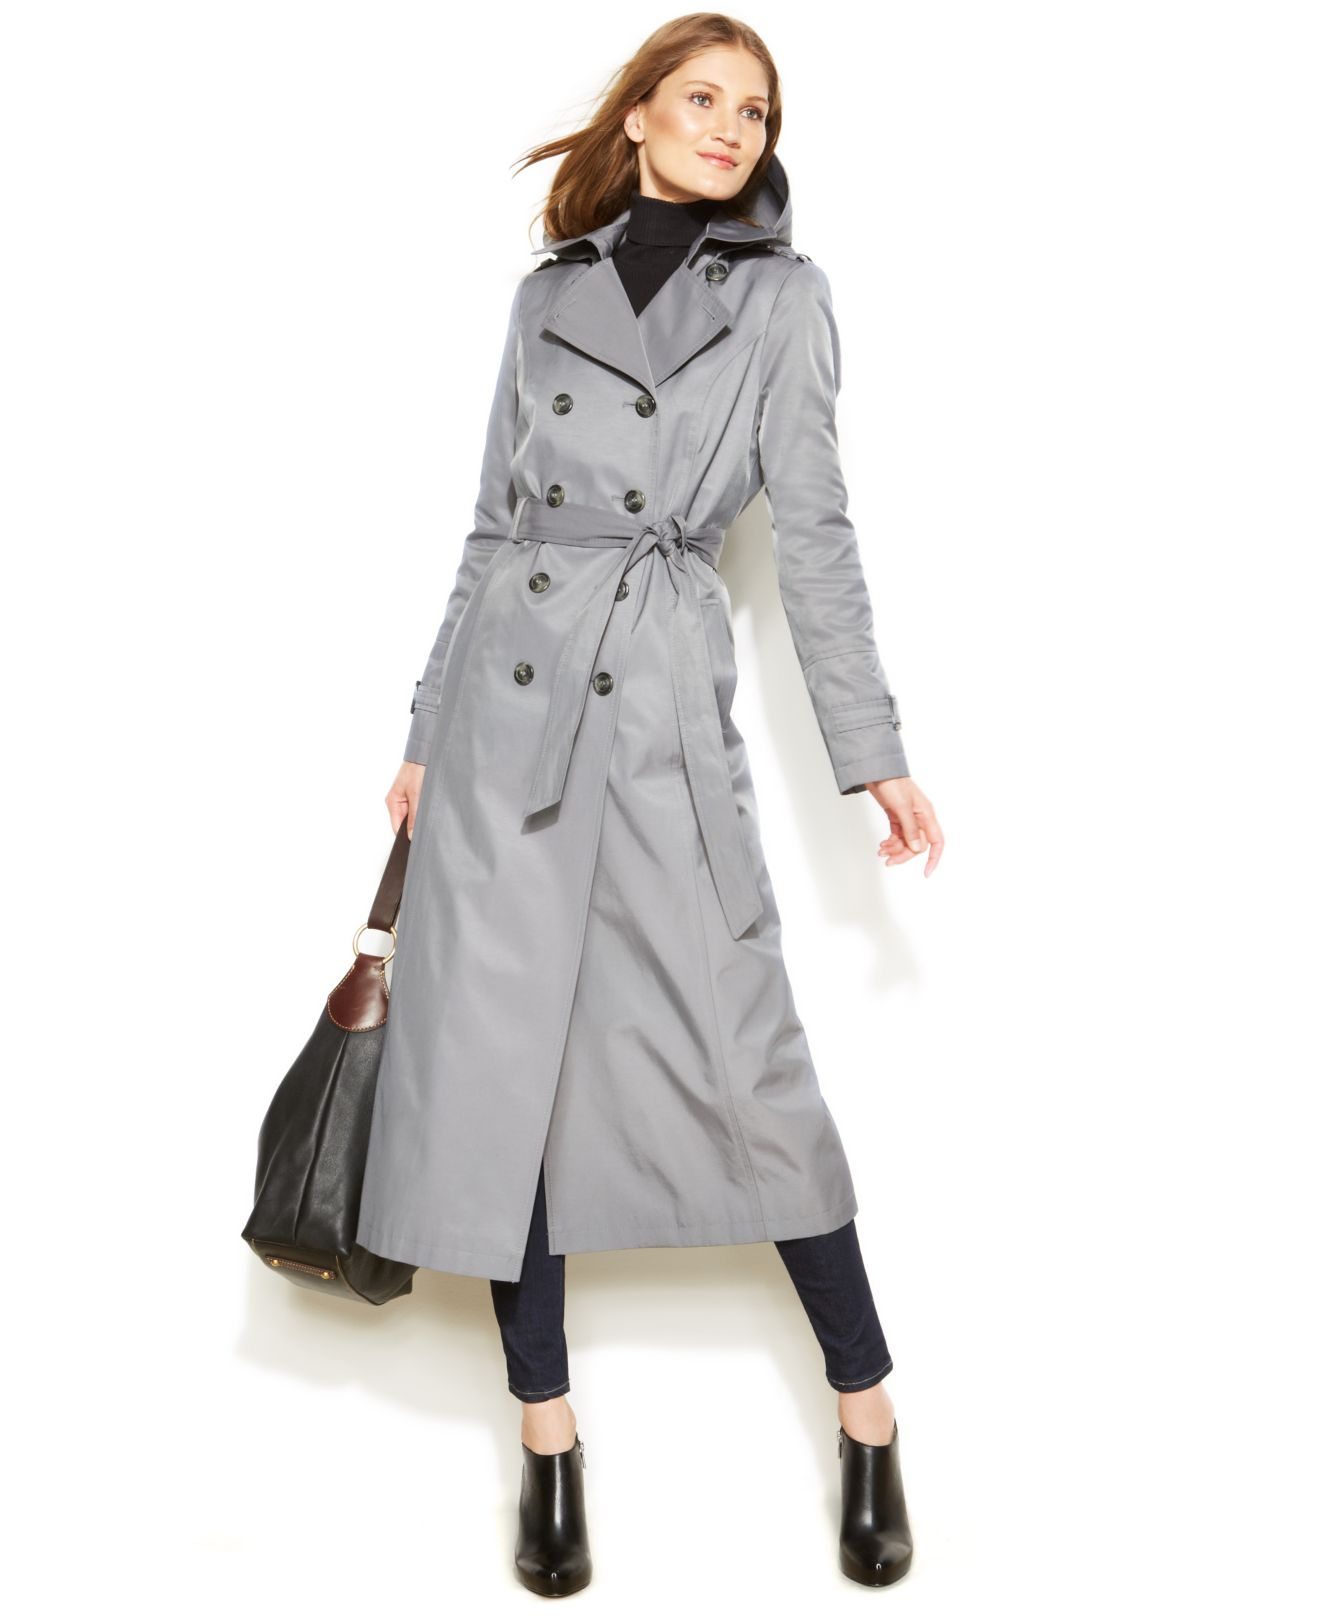 Dkny Petite Hooded Double-Breasted Maxi Trench Coat in Gray   Lyst